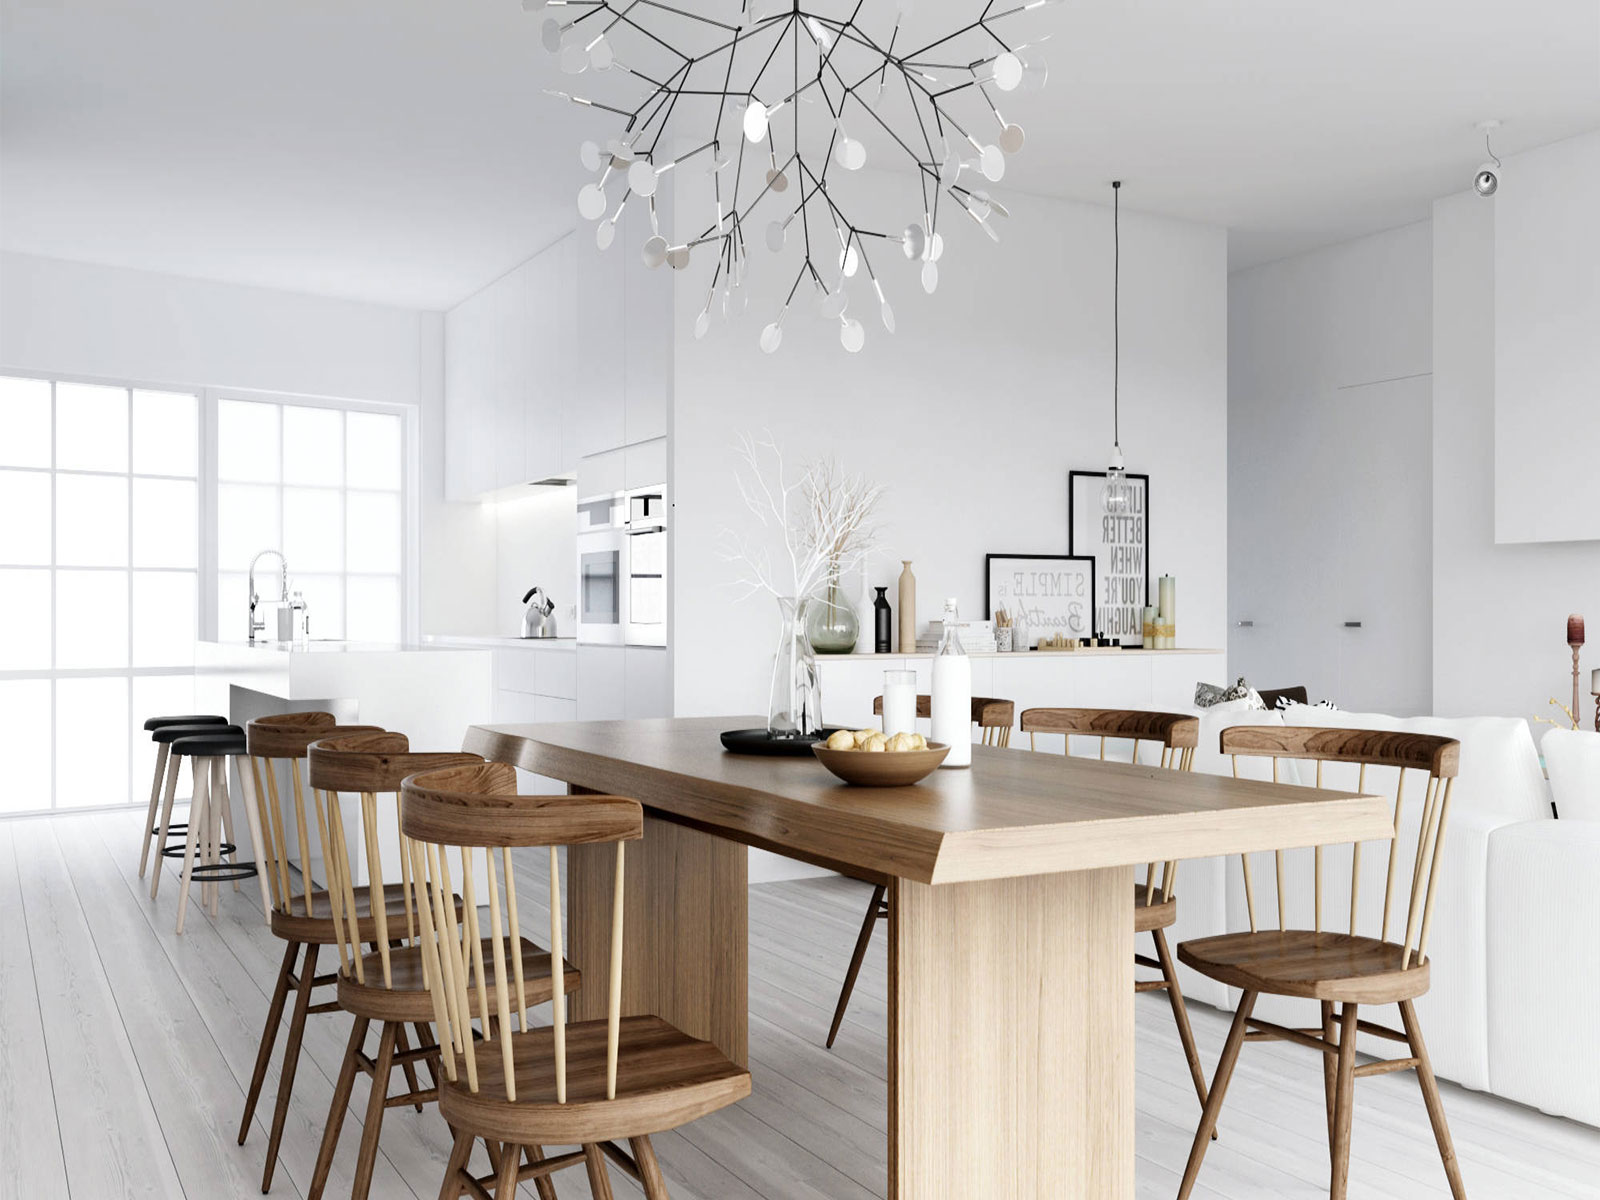 wooden-dining-nordic-style-nordic-interior-design